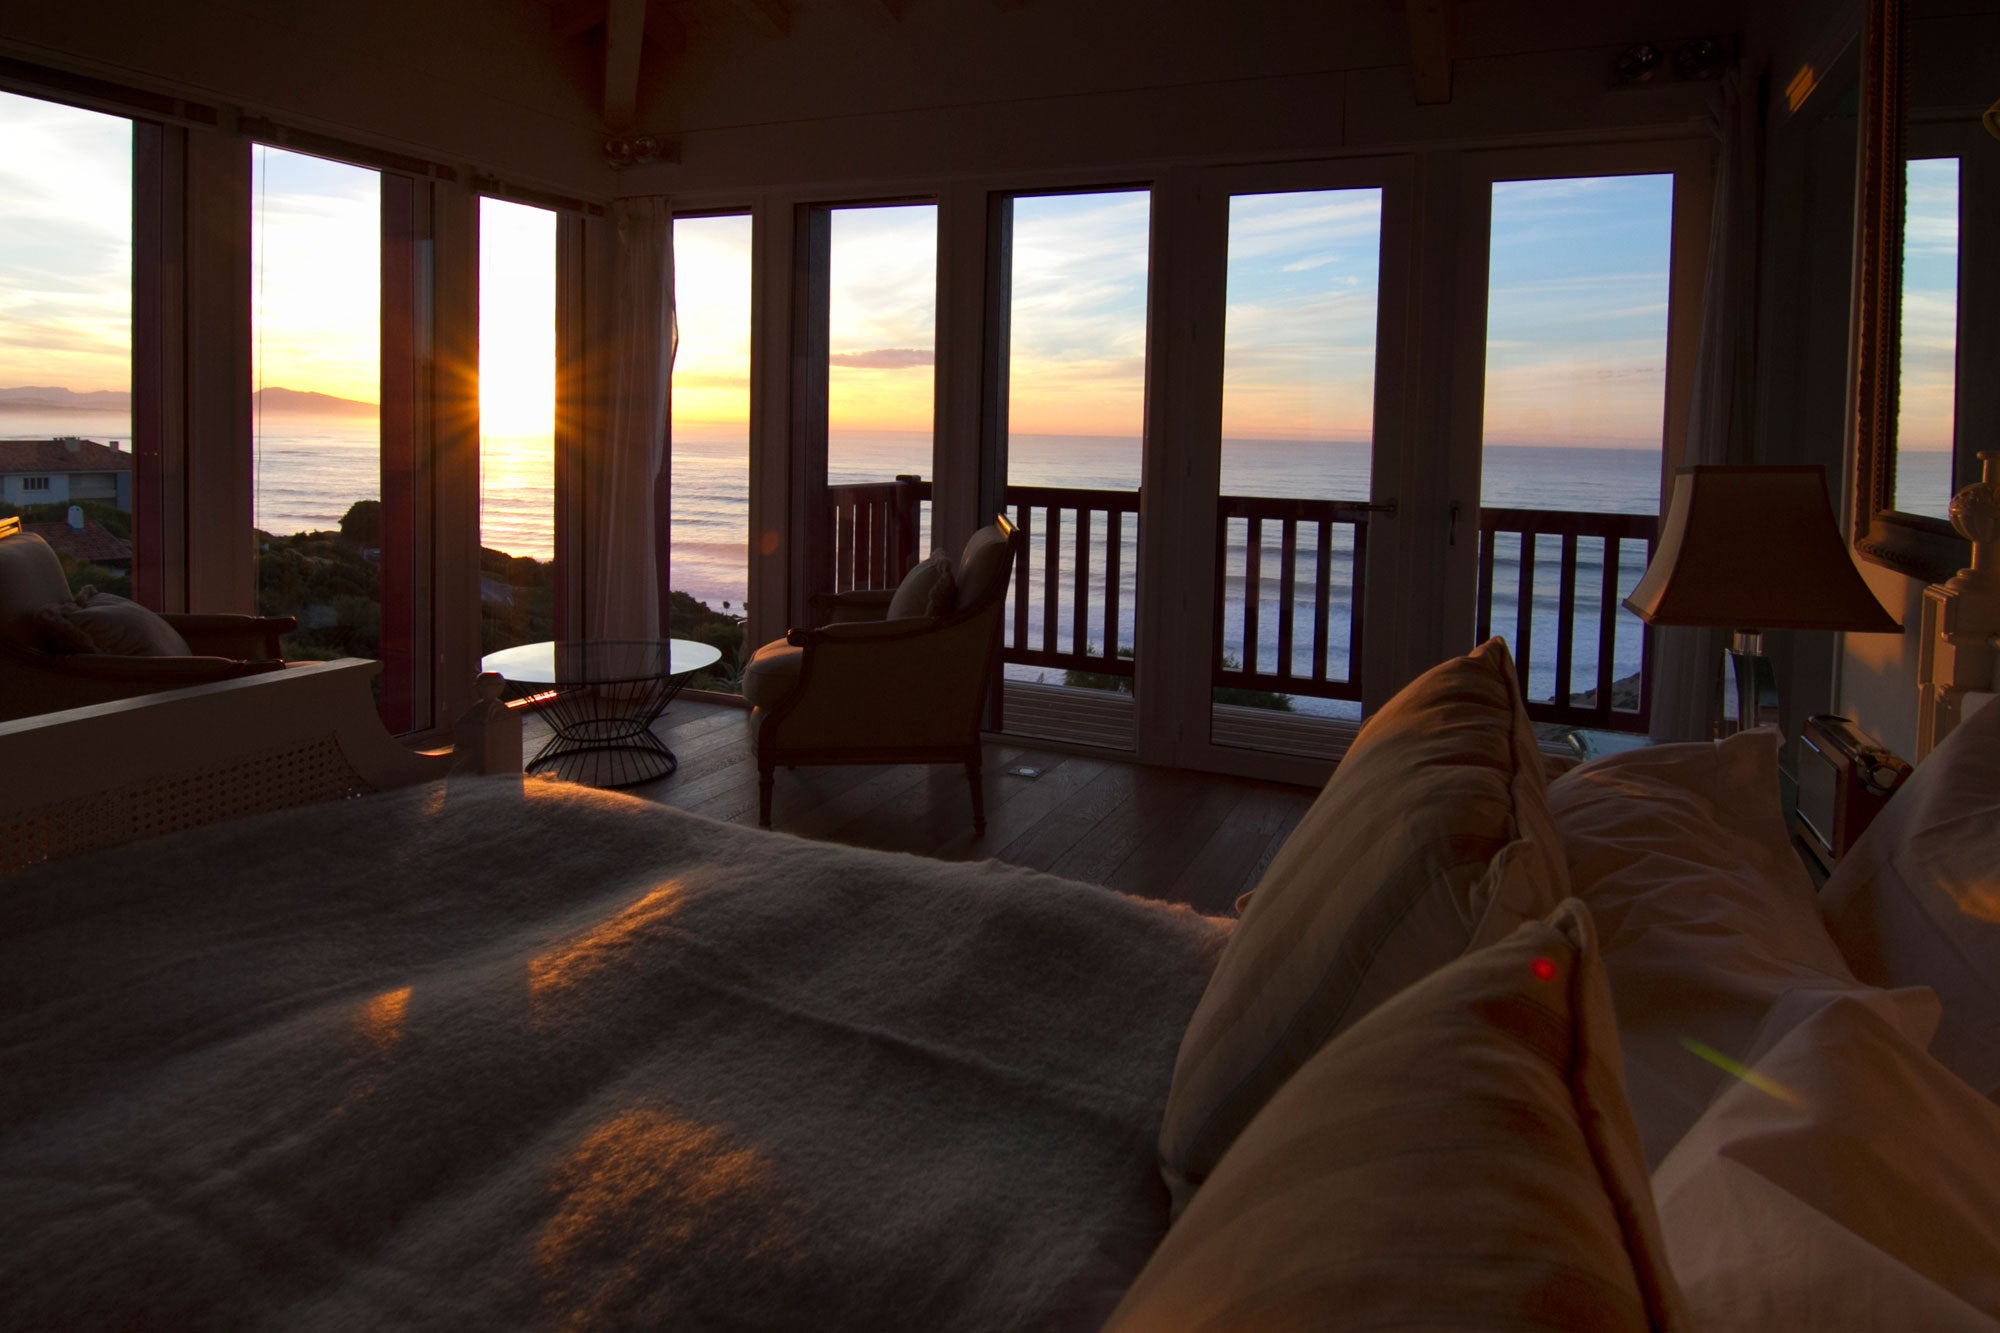 Biarritz holiday home bedroom sunset view